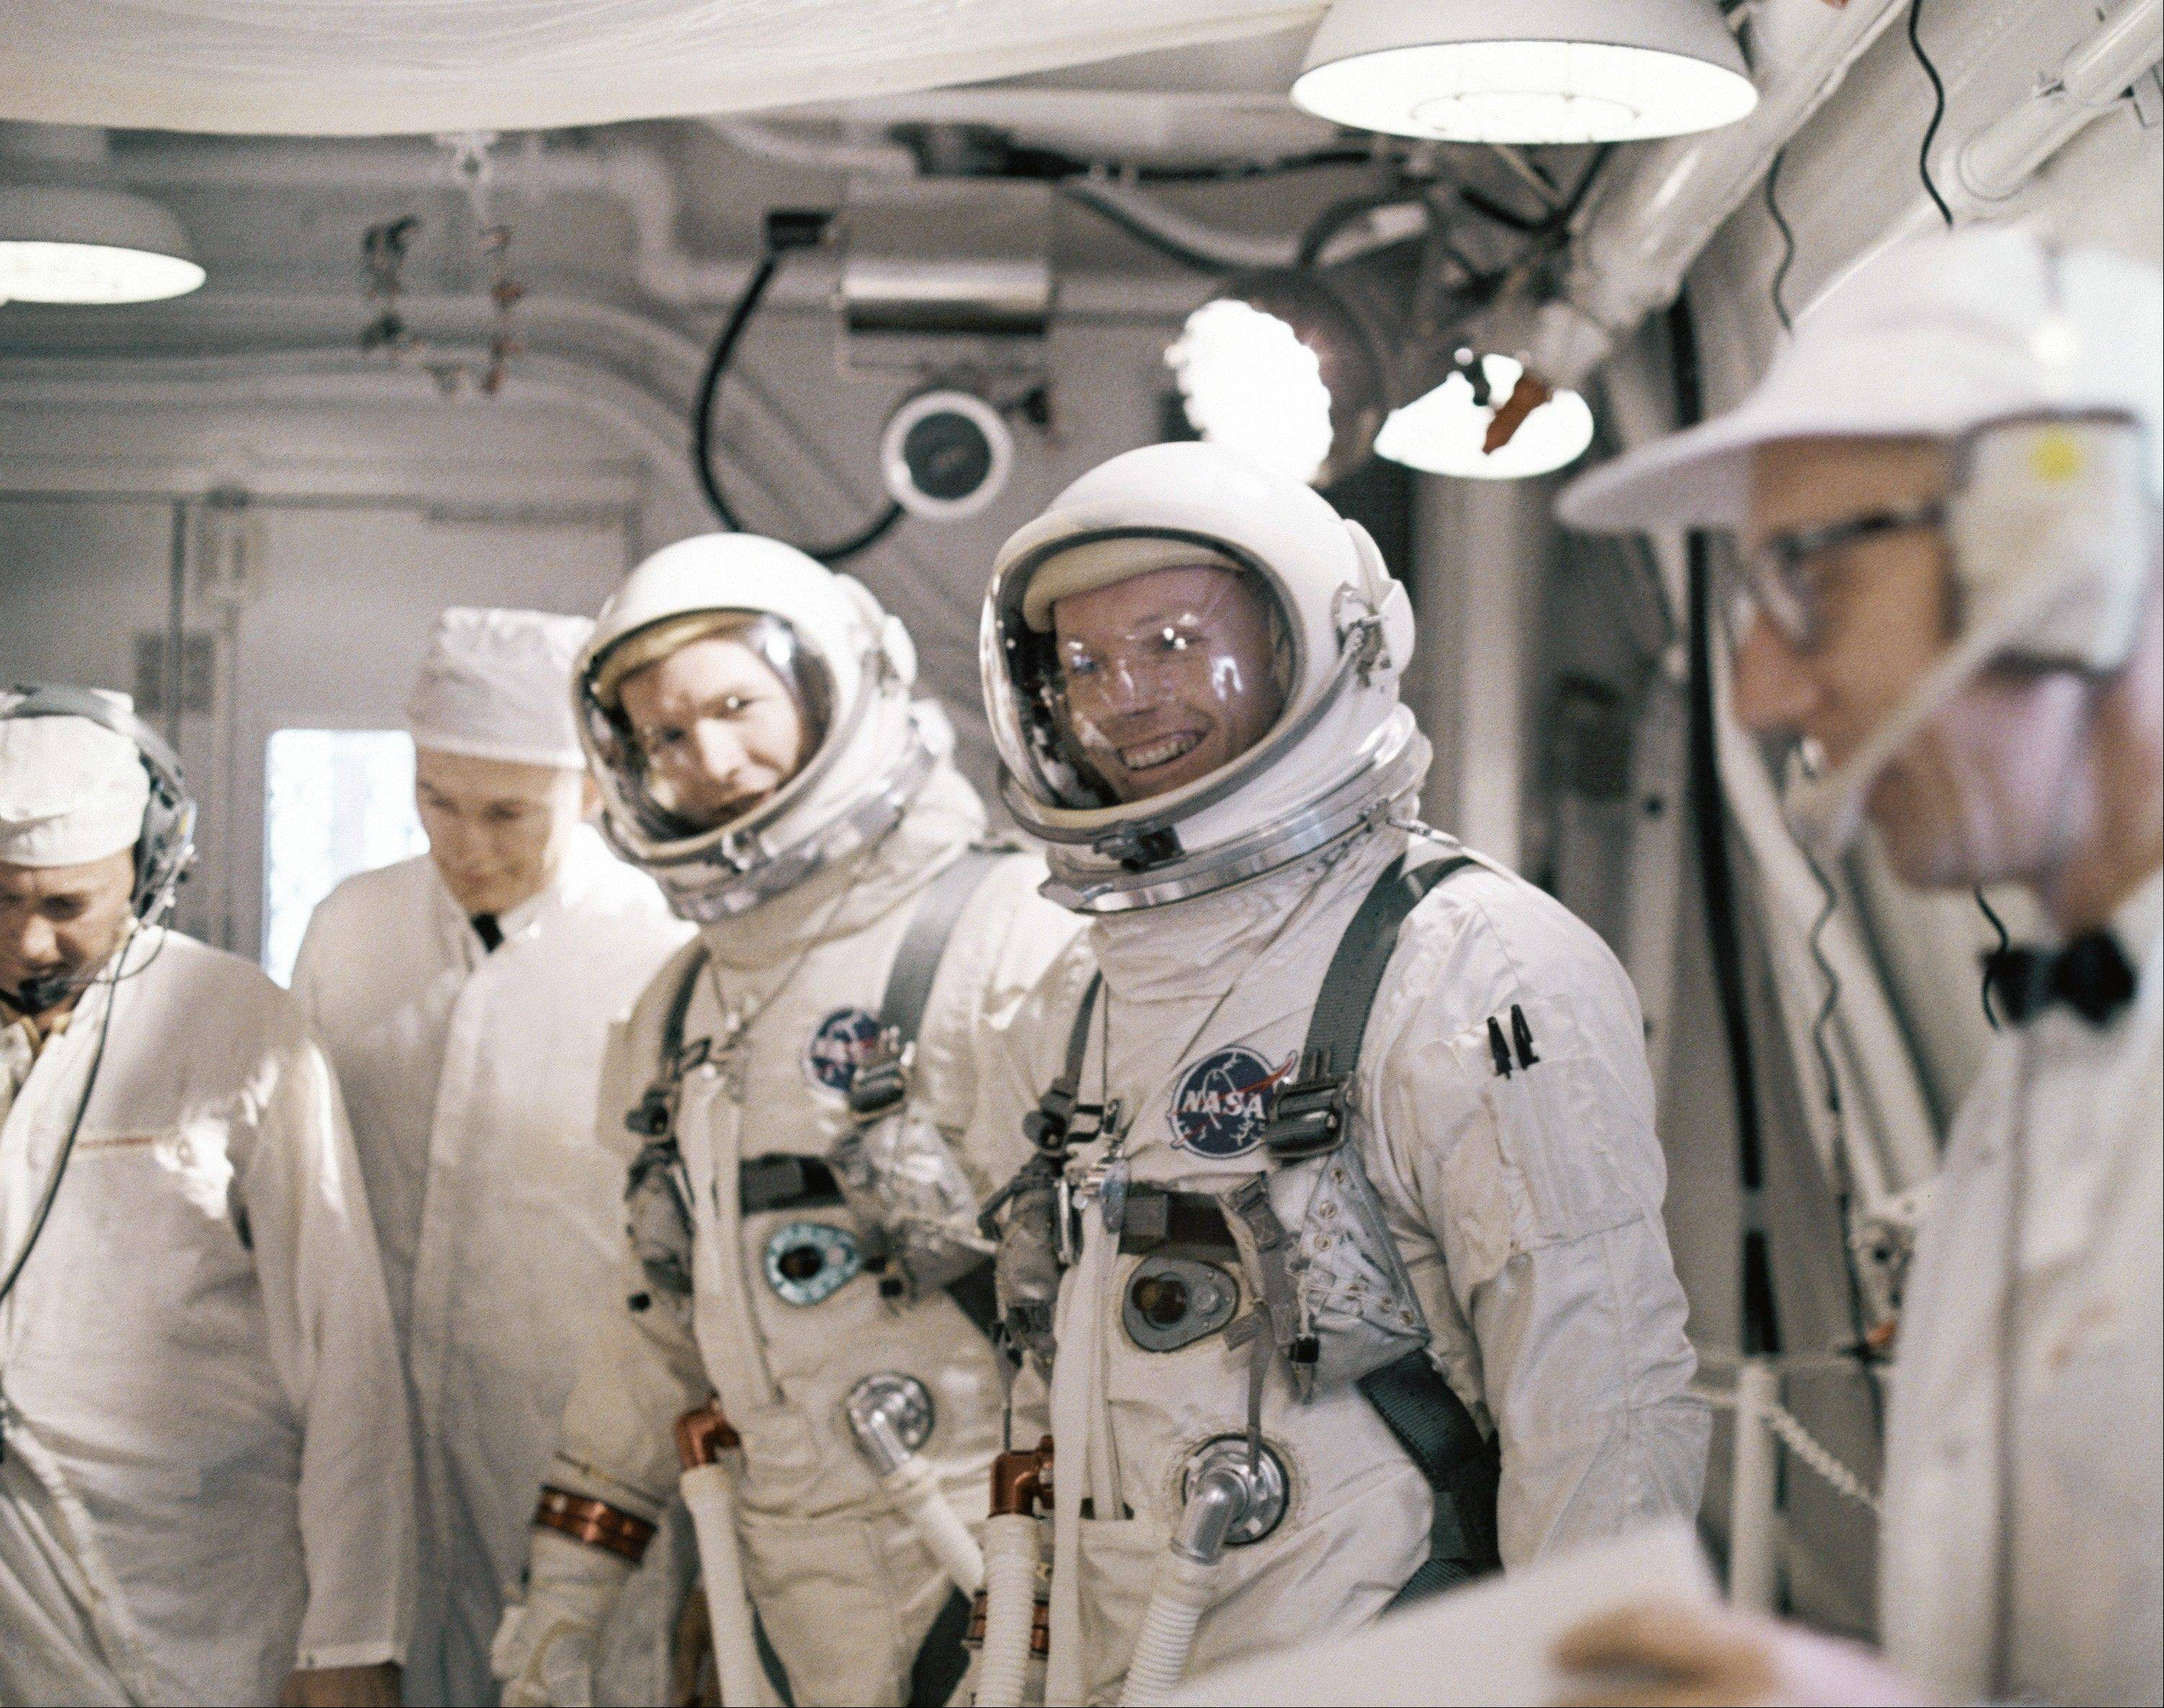 "In this March 16, 1966 file photo Astronauts Neil A. Armstrong and David R. Scott arrive, March 16, 1966 at Complex 19 for a simulated test in preparation for flight. The family of Neil Armstrong, the first man to walk on the moon, says he has died at age 82. A statement from the family says he died following complications resulting from cardiovascular procedures. It doesn't say where he died. Armstrong commanded the Apollo 11 spacecraft that landed on the moon July 20, 1969. He radioed back to Earth the historic news of ""one giant leap for mankind."" Armstrong and fellow astronaut Edwin ""Buzz"" Aldrin spent nearly three hours walking on the moon, collecting samples, conducting experiments and taking photographs. In all, 12 Americans walked on the moon from 1969 to 1972."